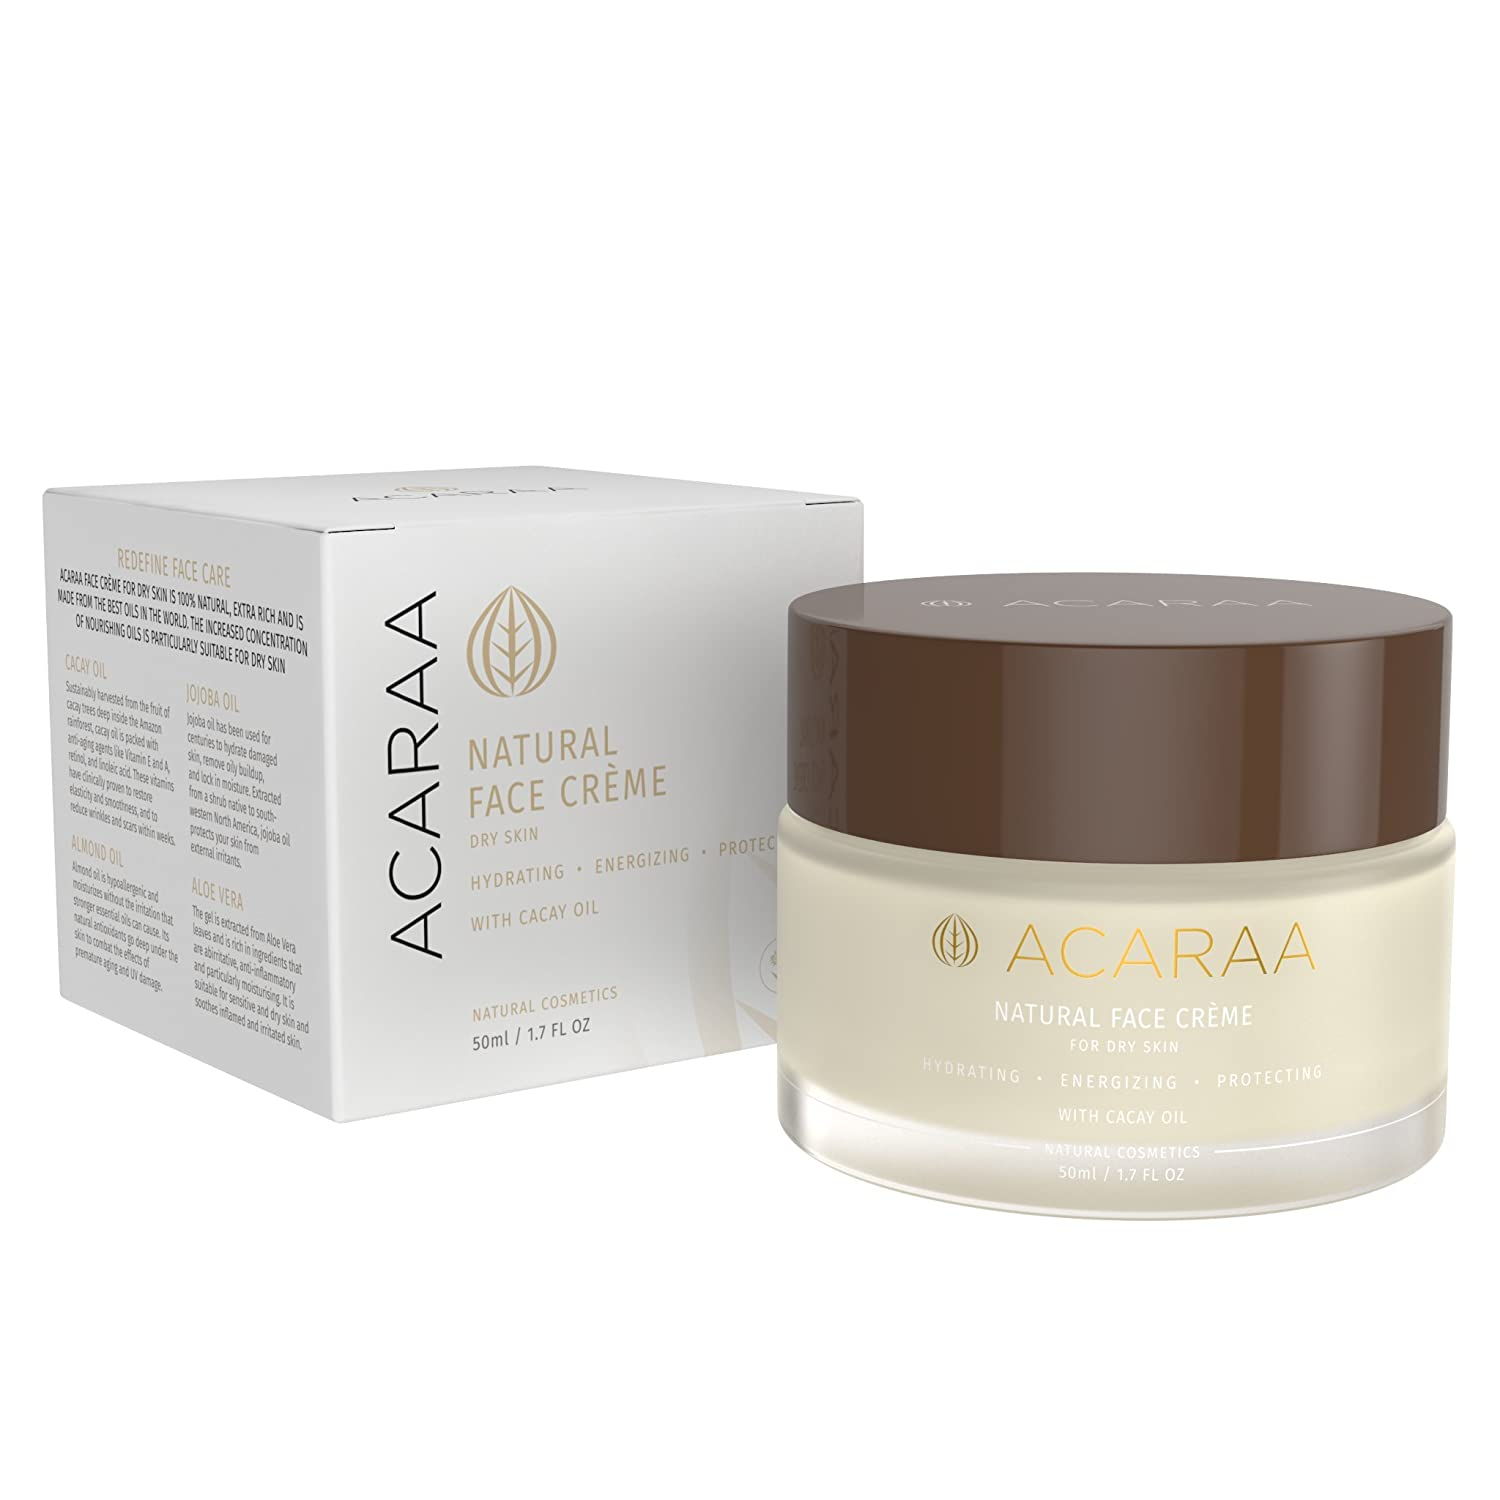 ACARAA Anti-Aging Face Cream For Sensitive Skin, Dry Skin Face Moisturizer For Women, Anti Wrinkle Day Night Cream With Aloe Vera Cacay Oil, Natural Cosmetics From Germany, 1.7 oz